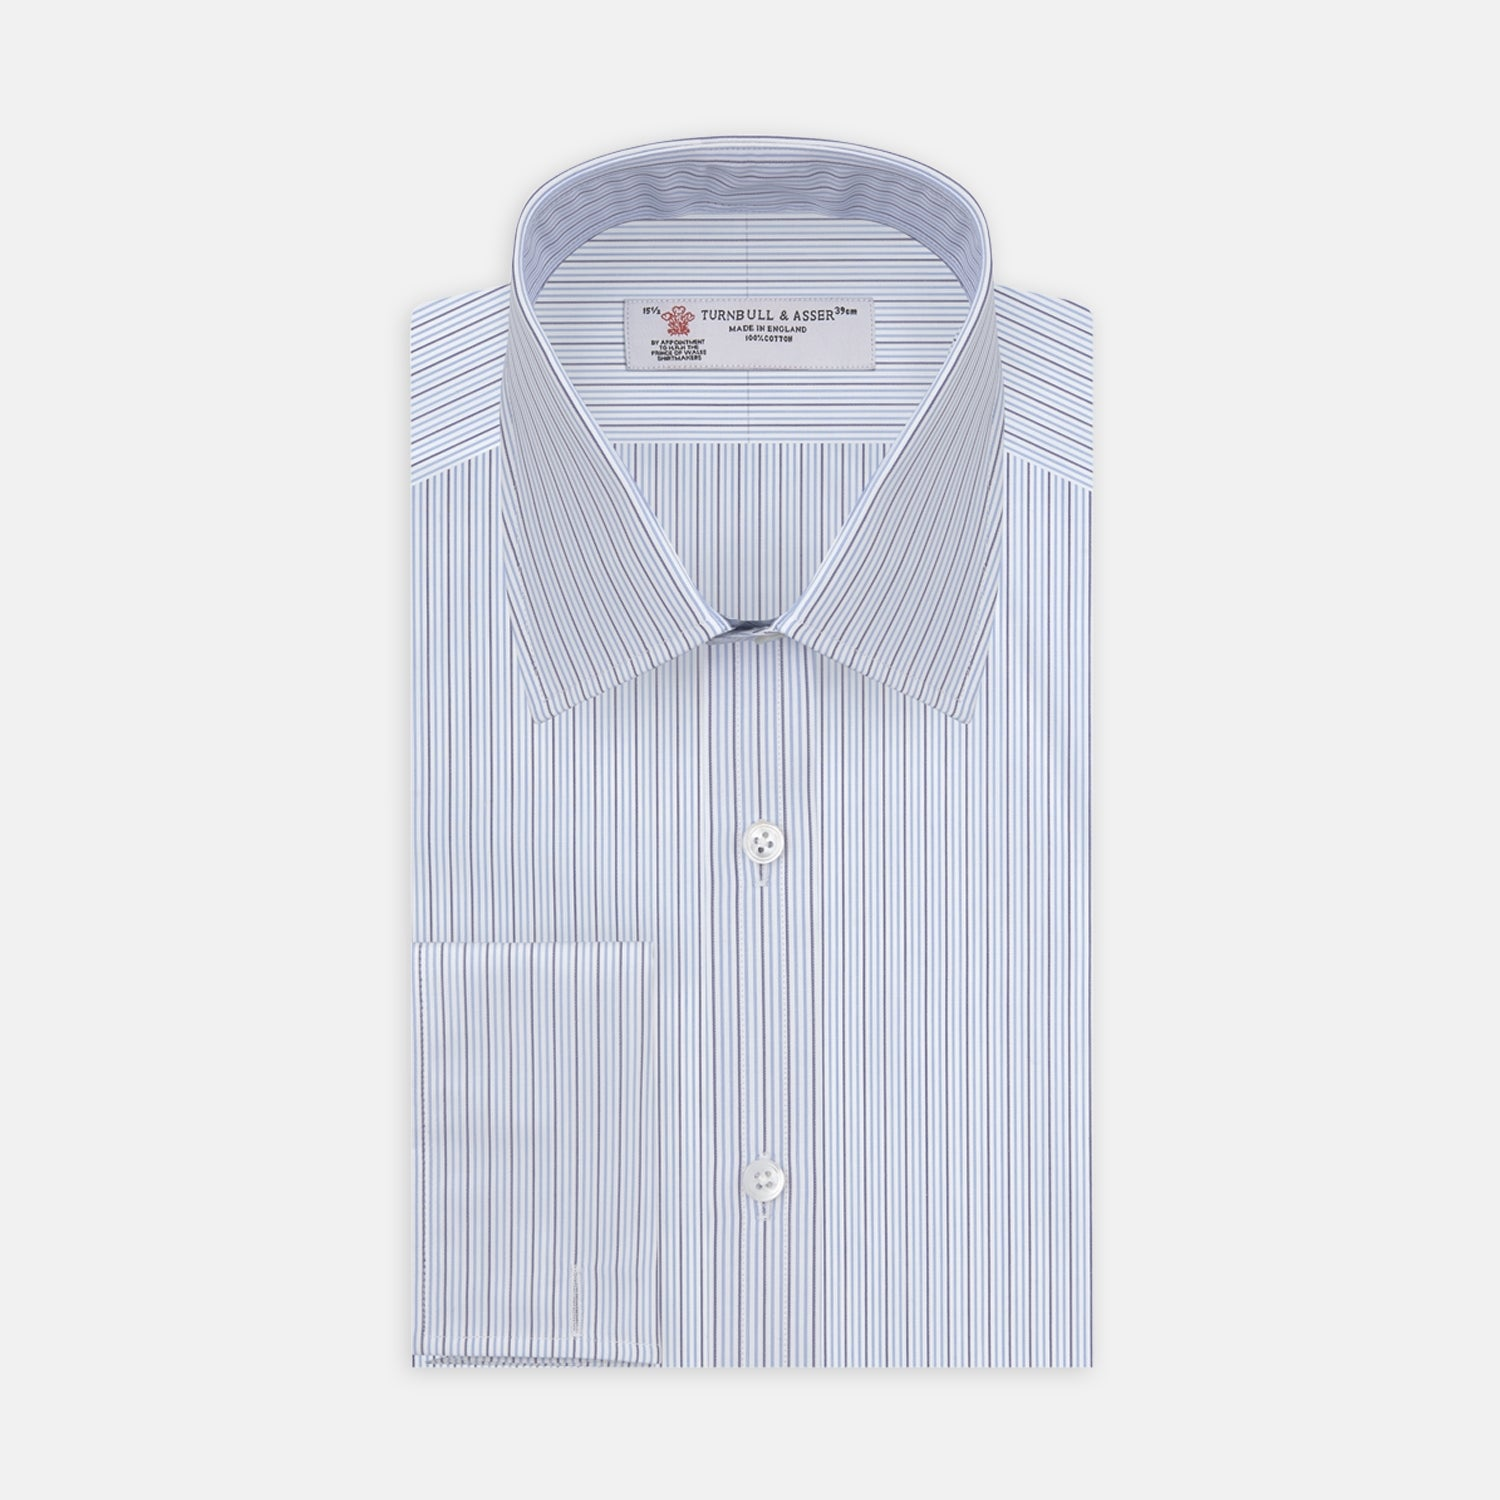 Navy and Light Blue Supraluxe Stripe Shirt with T&A Collar and Double Cuffs